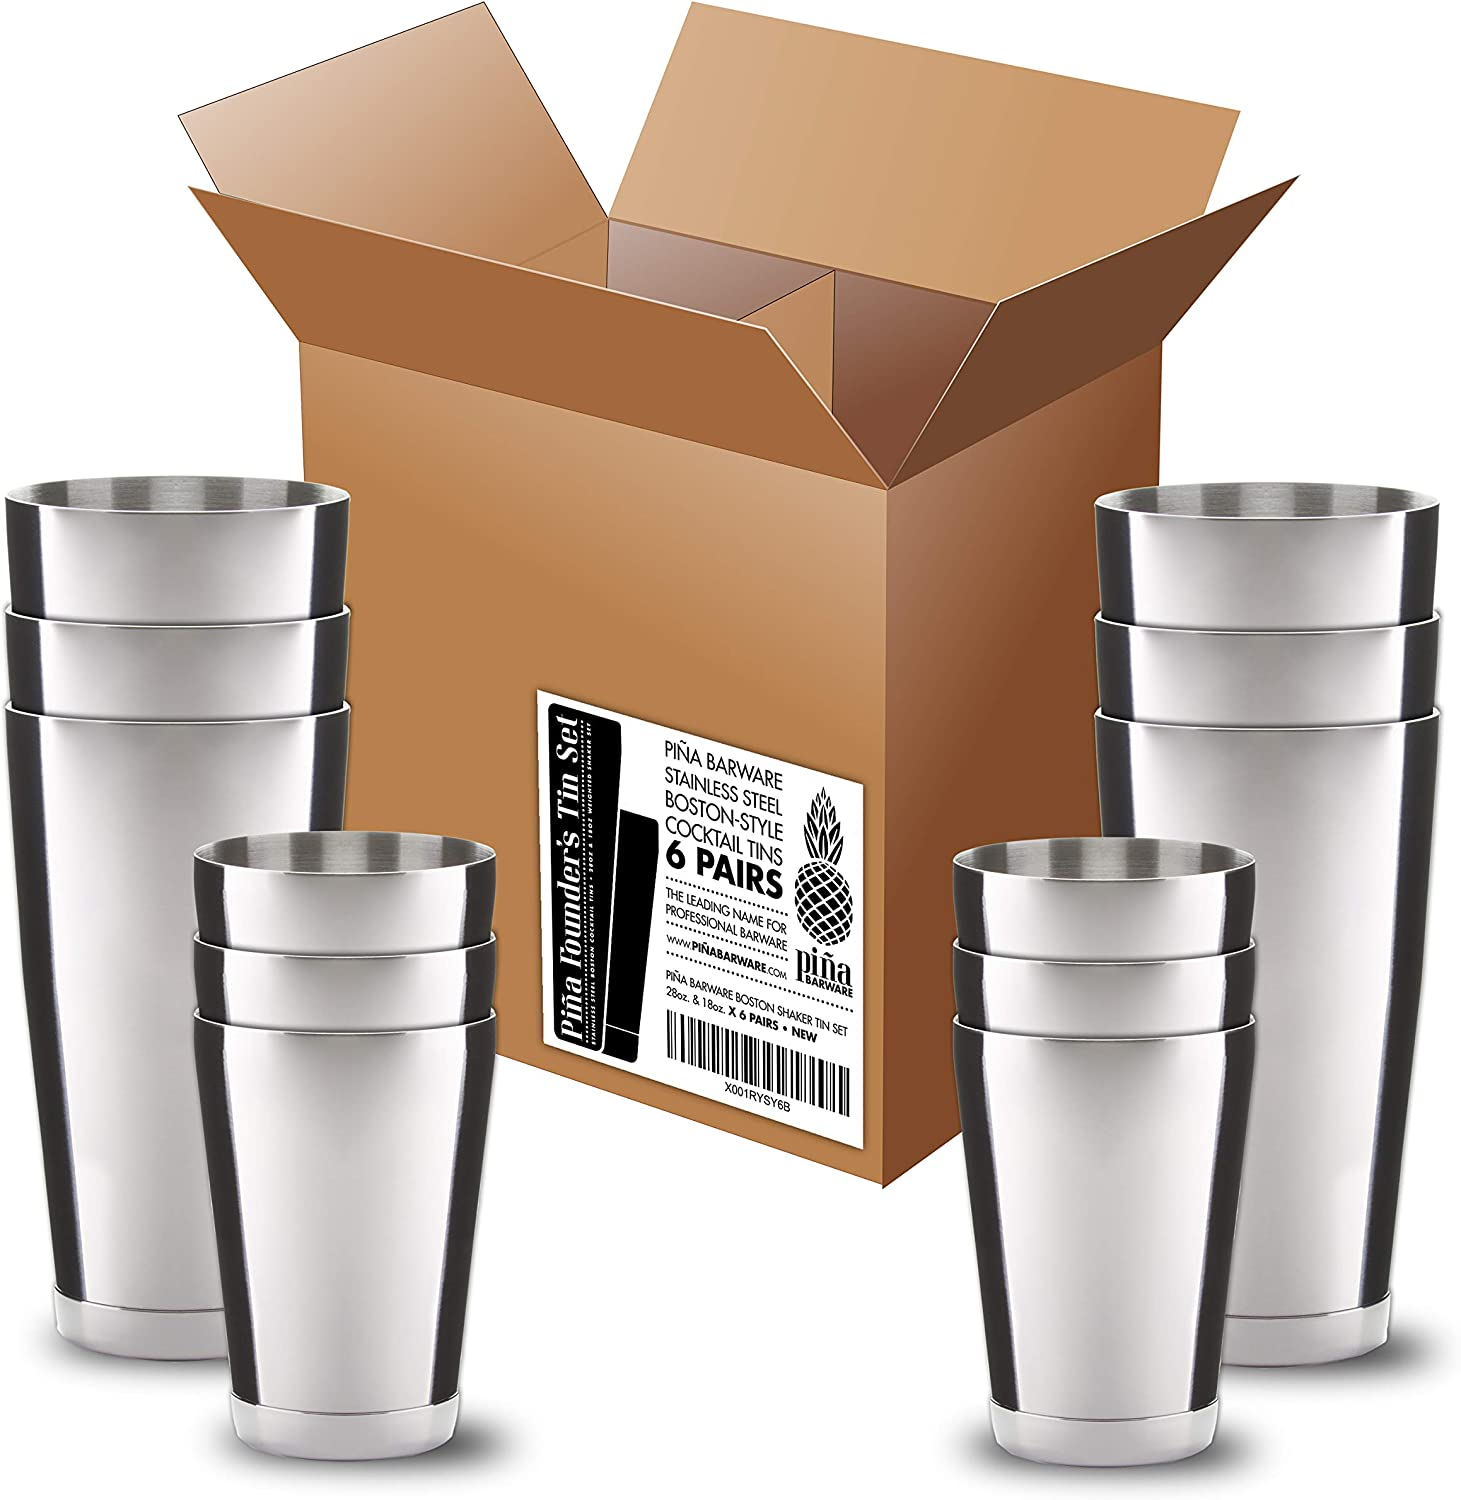 Pi?a Barware Stainless Steel Commercial Bar Boston Shaker Tin Set - 28oz. & 18oz. (6 Pairs Commercial Bar Pack)